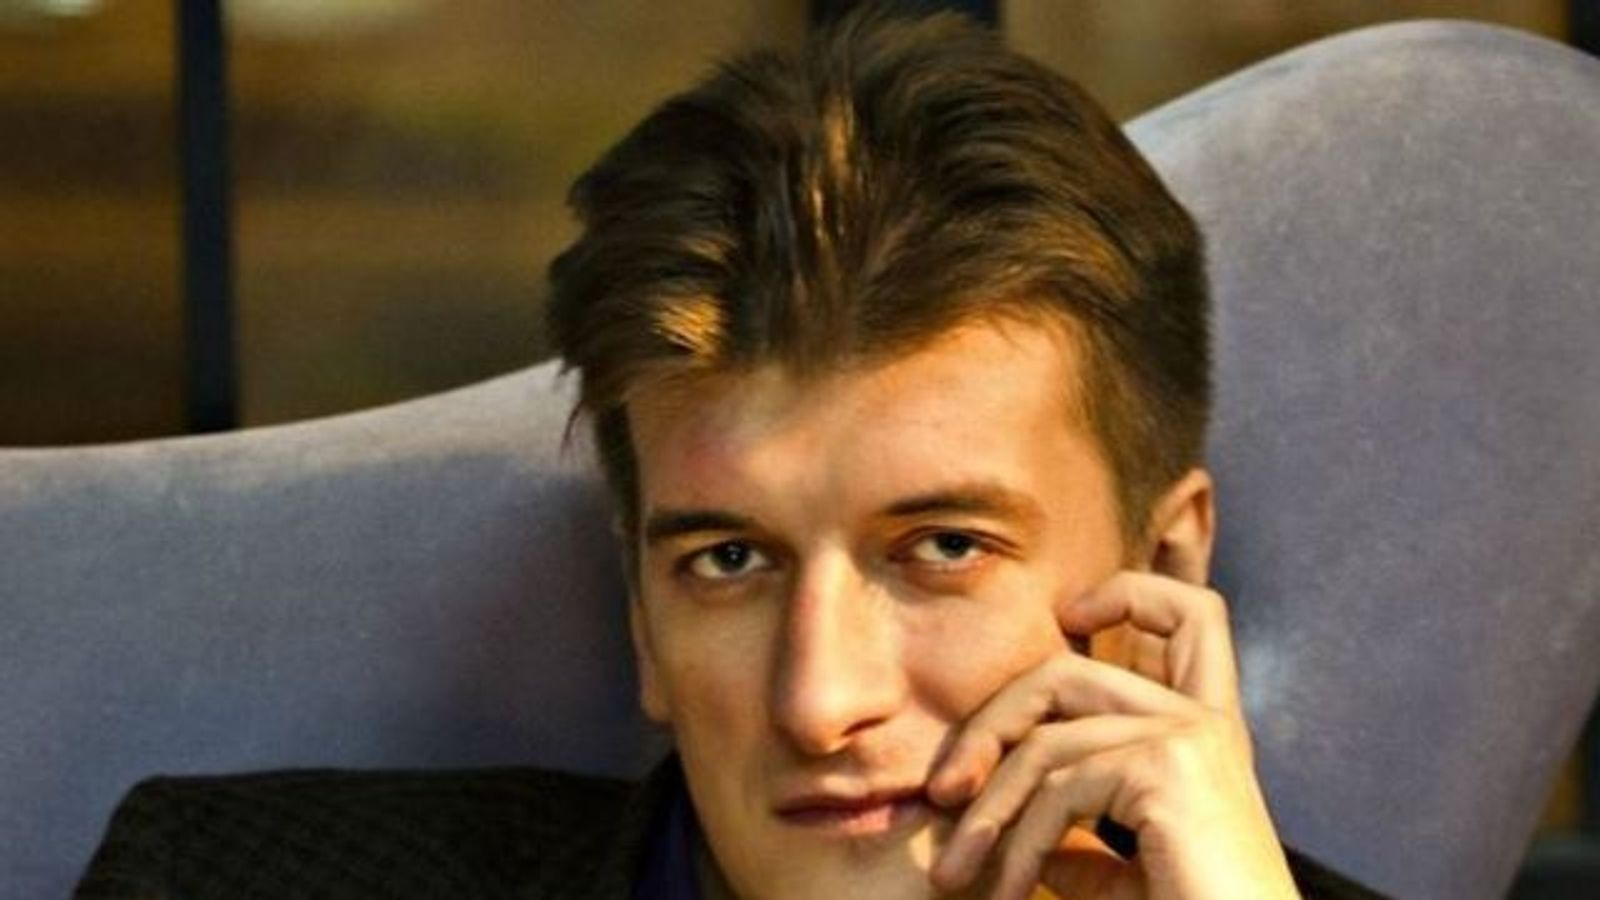 'Serious concern' about death of Russian writer